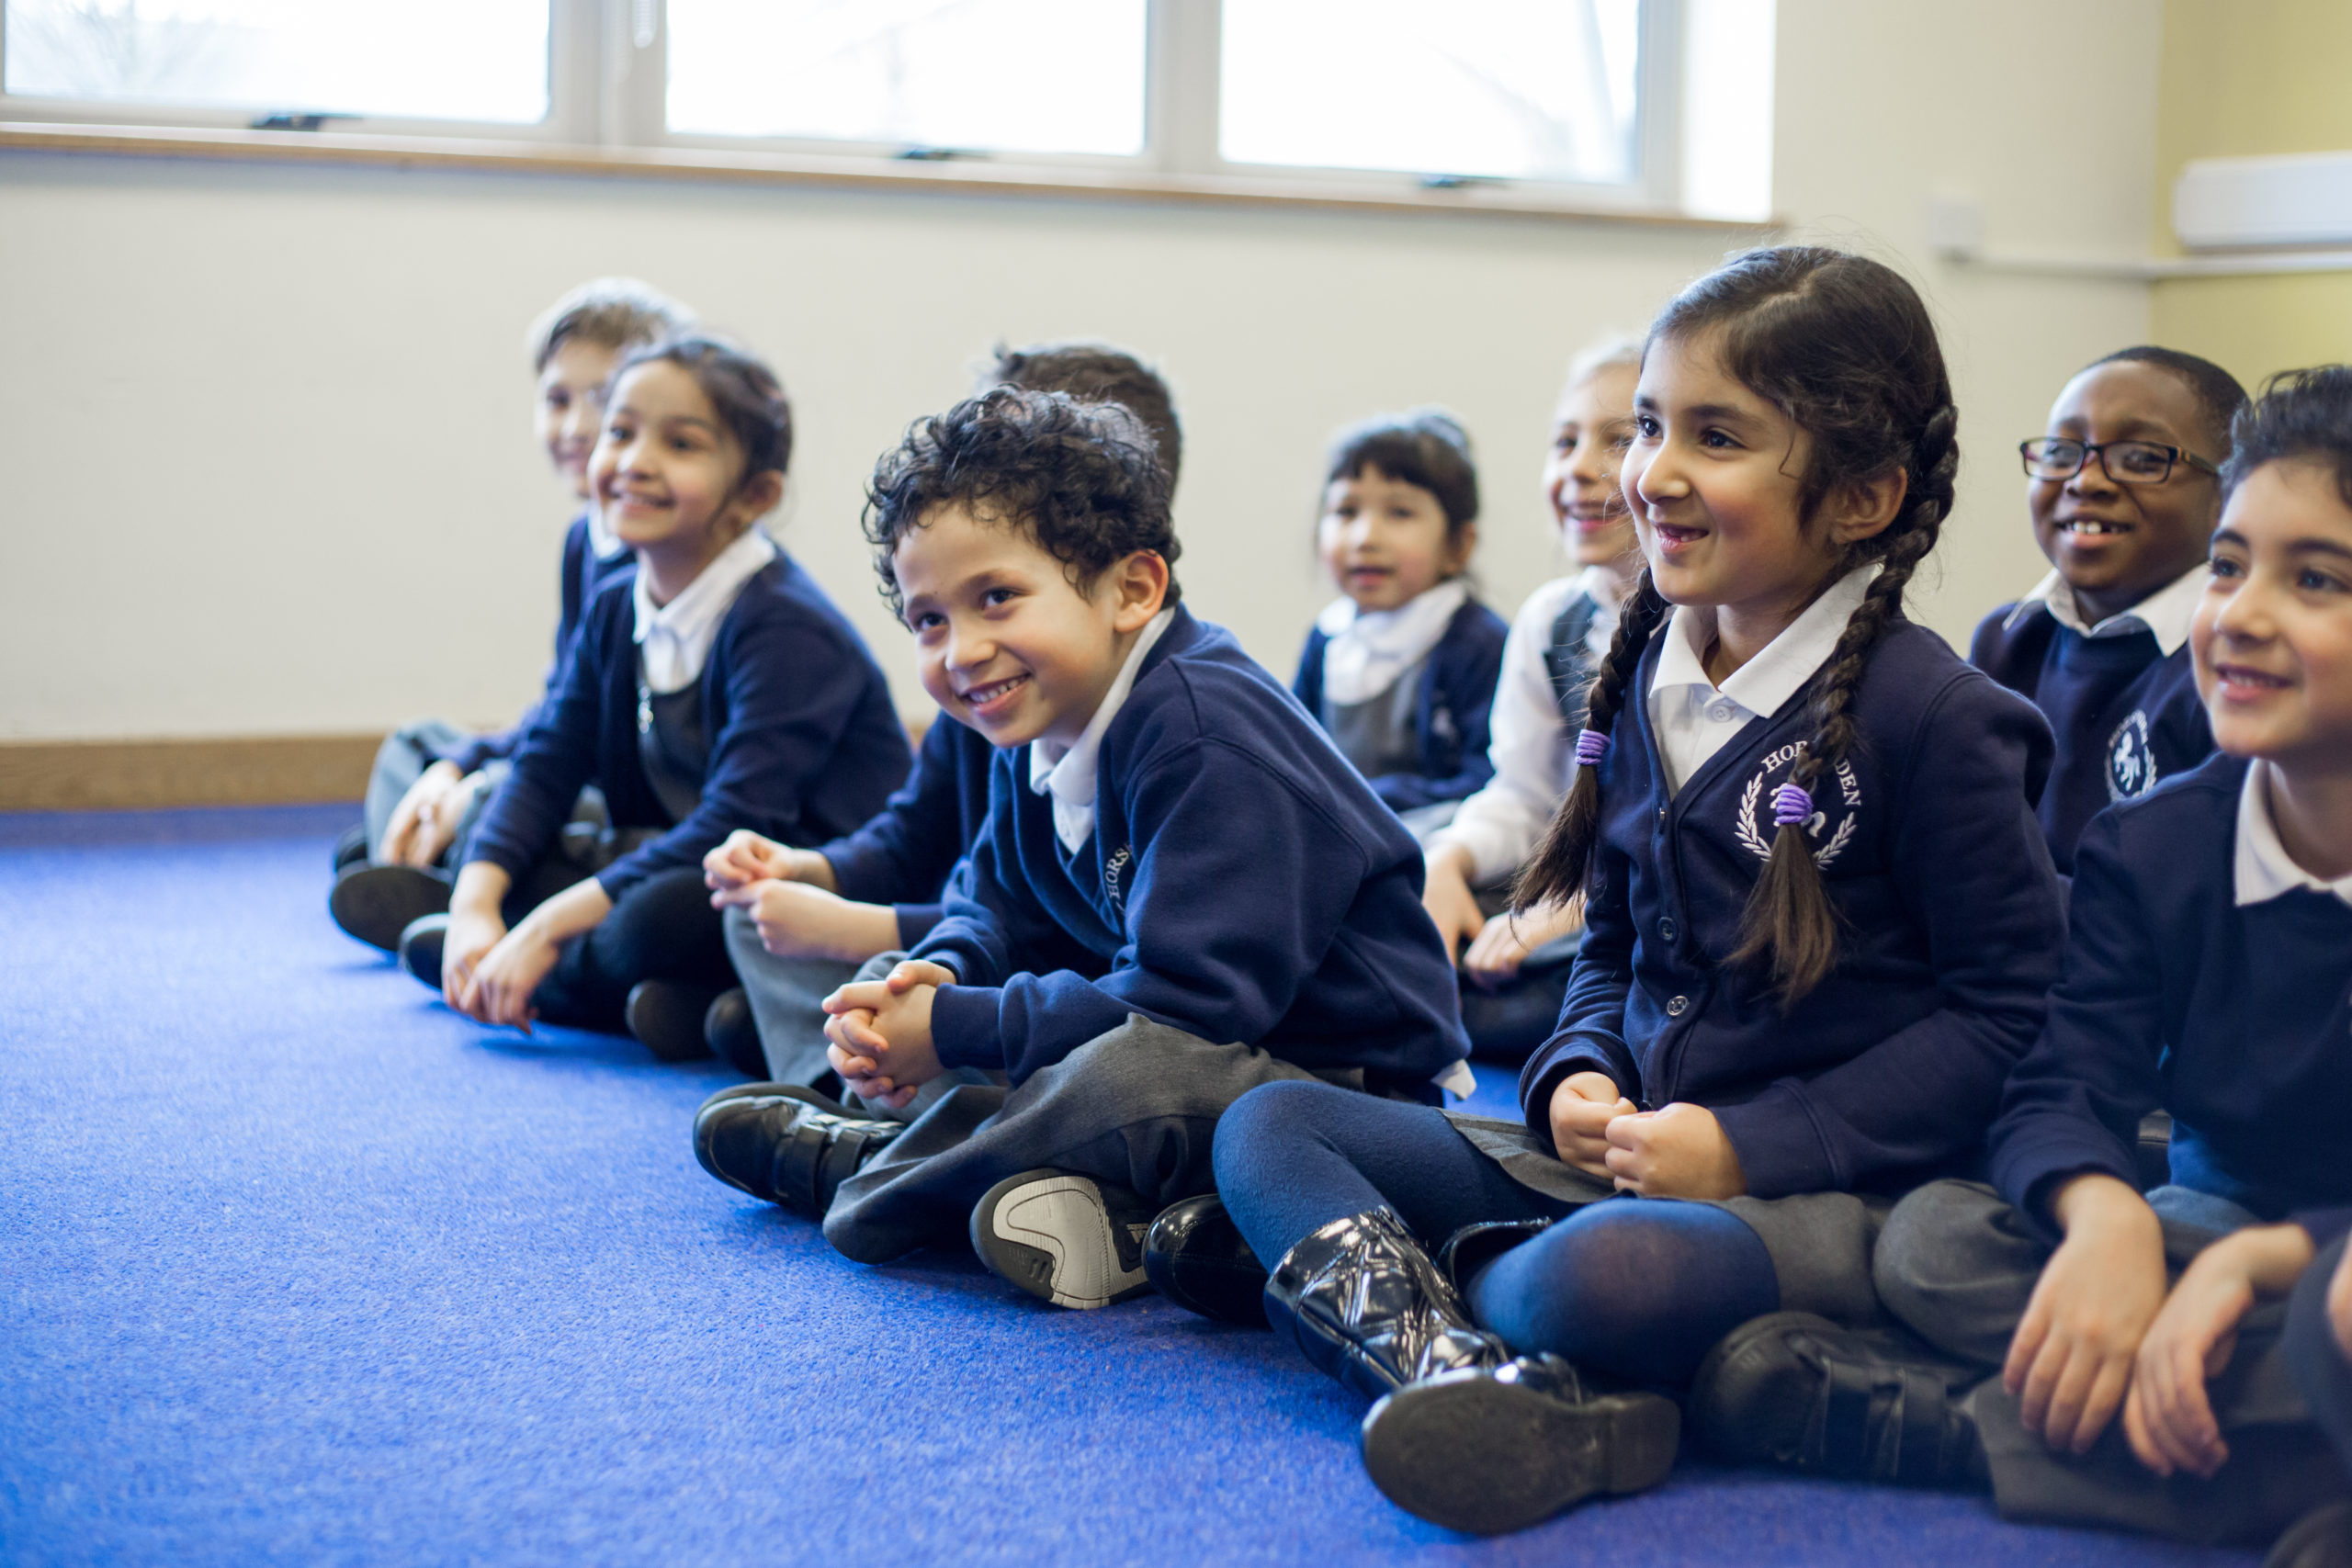 Ten KS1 primary pupils sitting on classroom carpet, legs crossed, in lines, smiling, blue and grey uniform, blue carpet